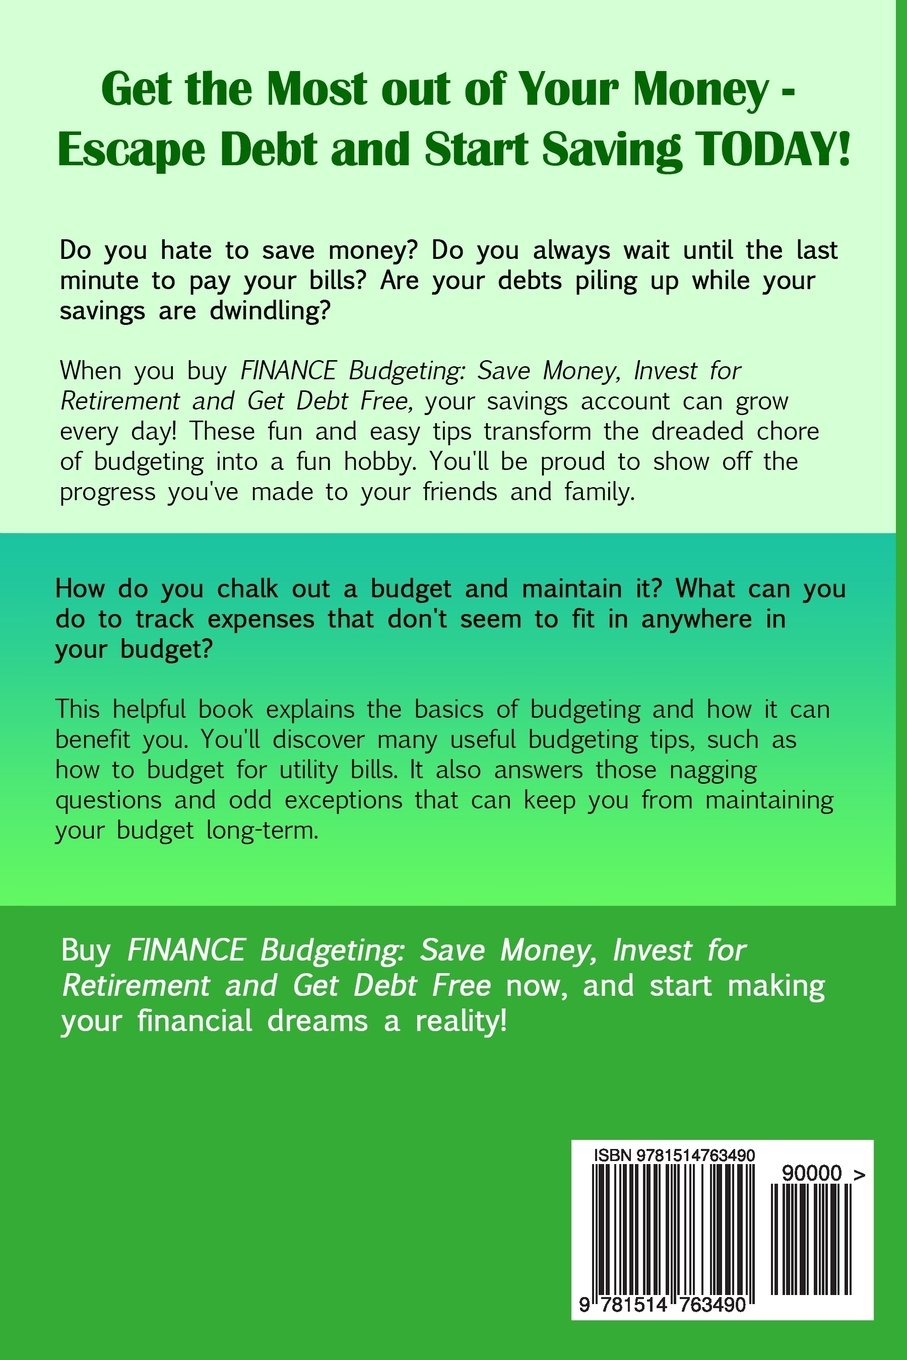 When to save before paying debt